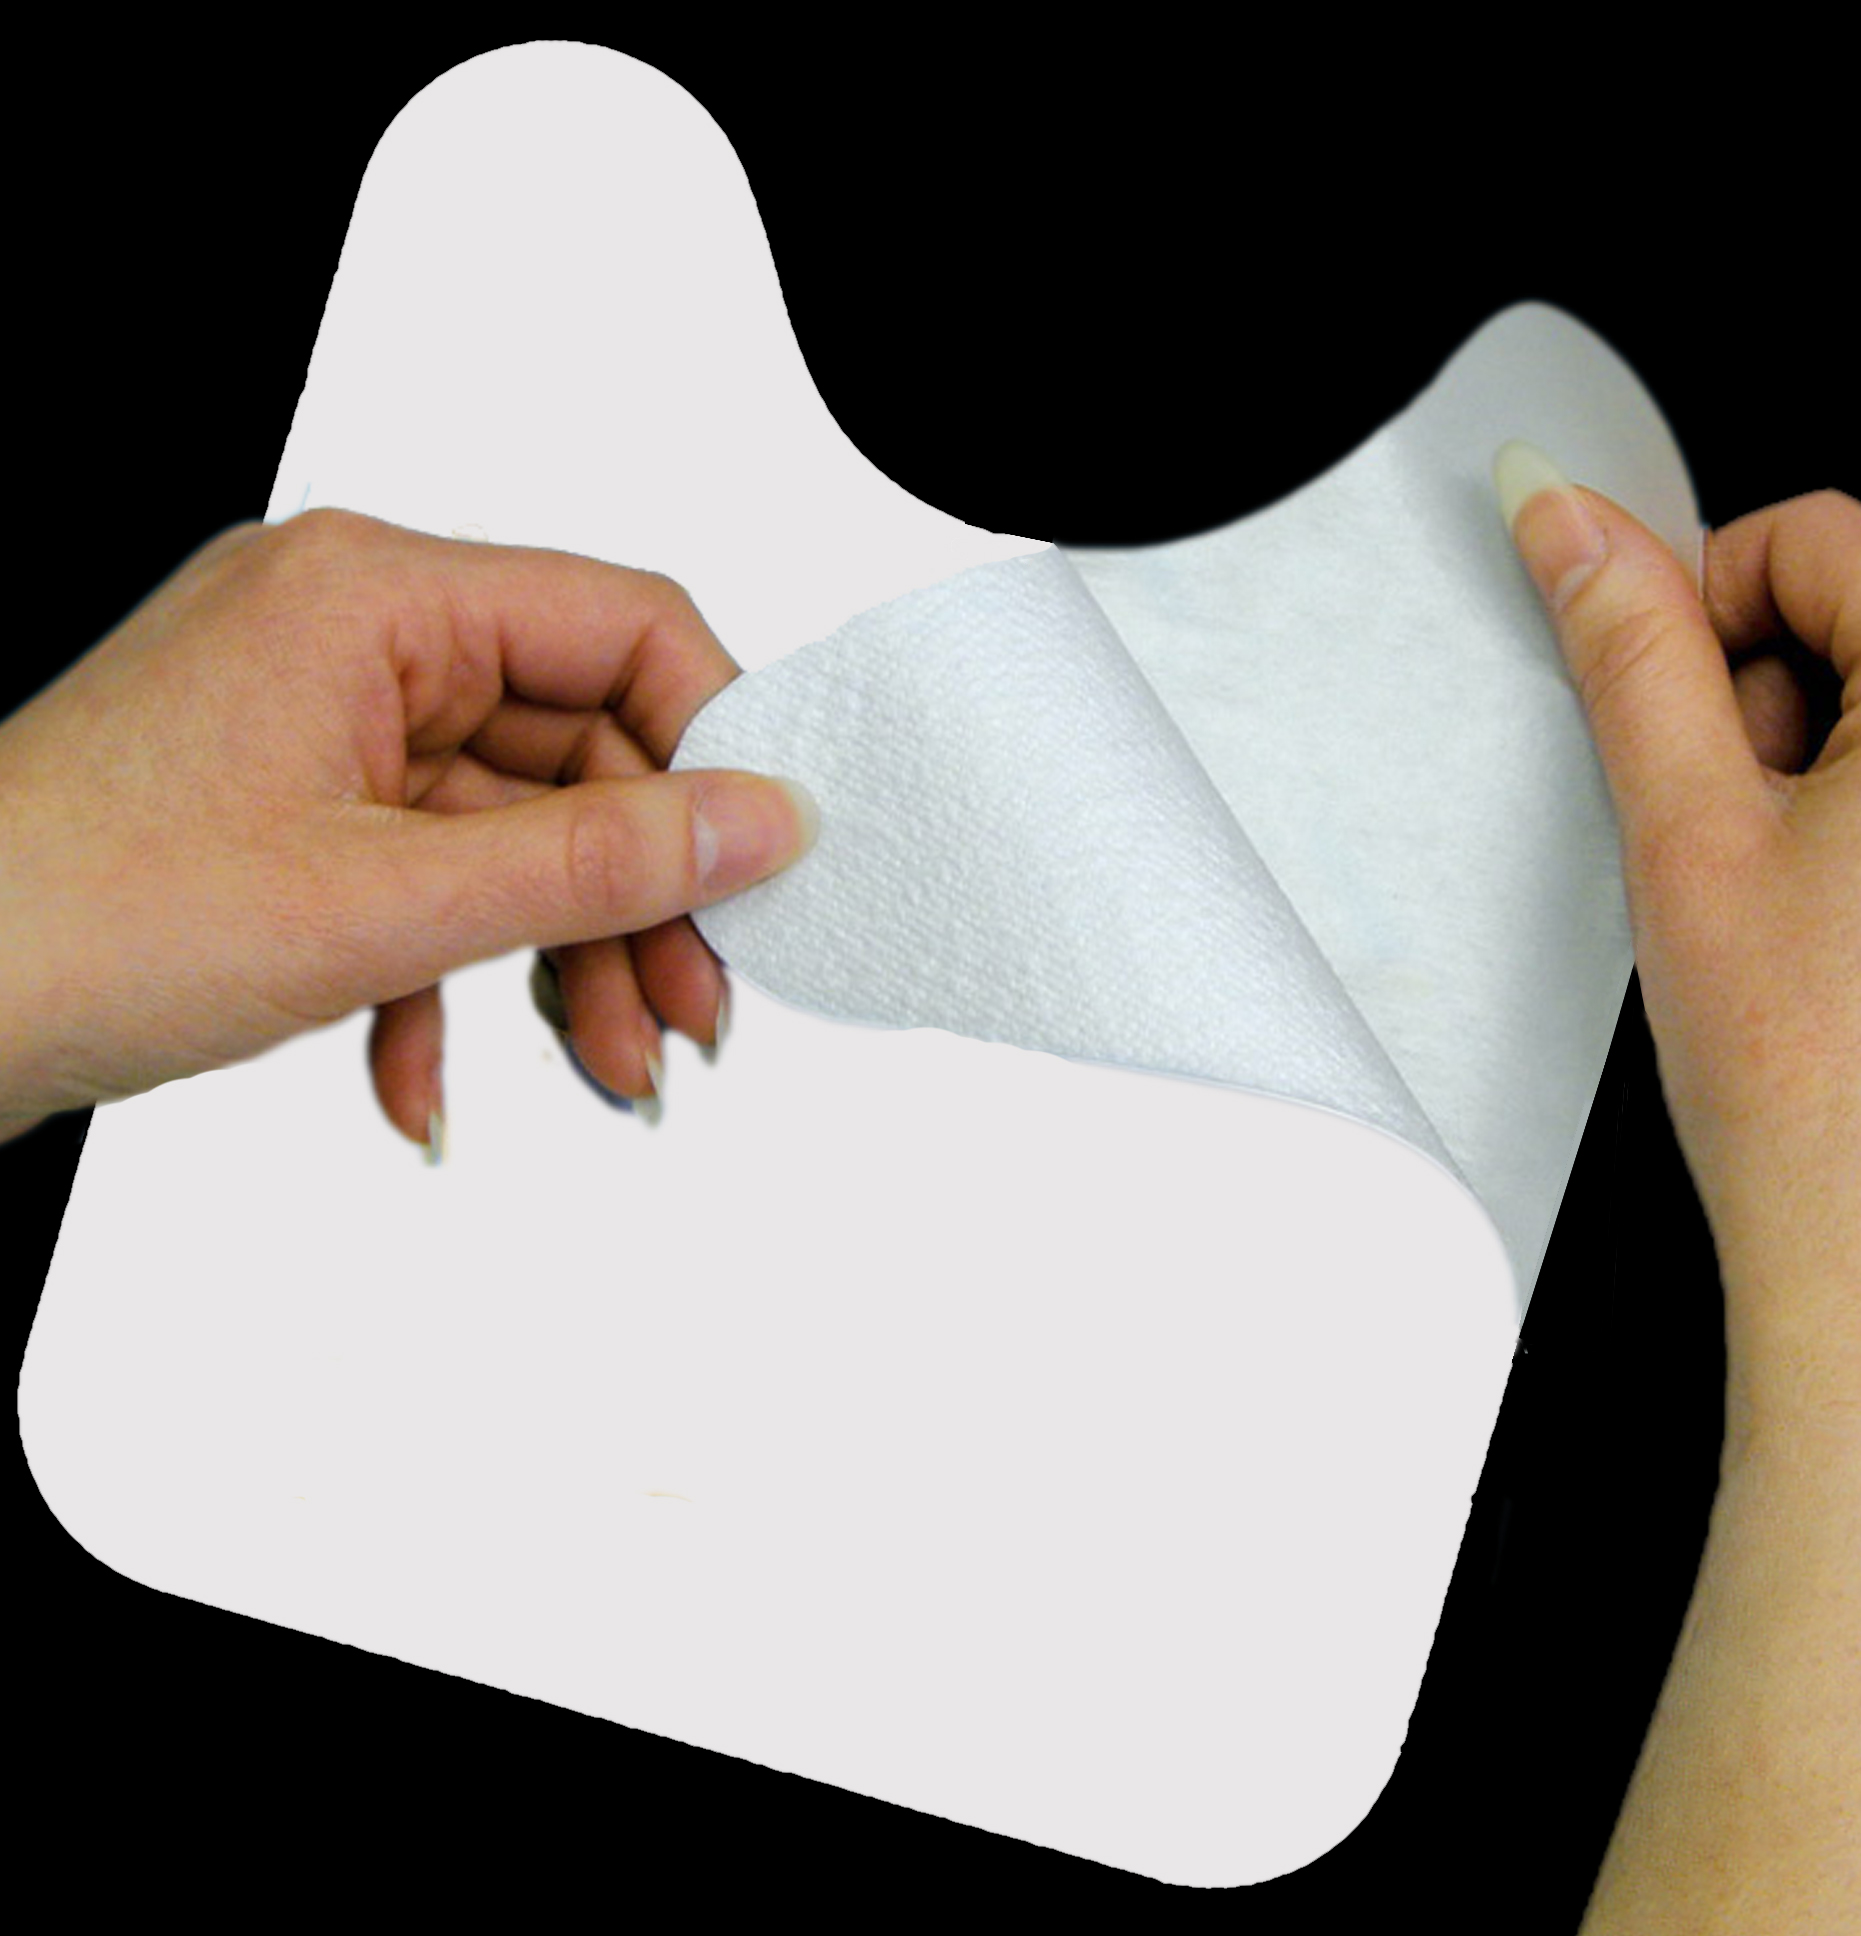 Sticky Bibs Creates An Adult Bib That Consumers Get Attached To